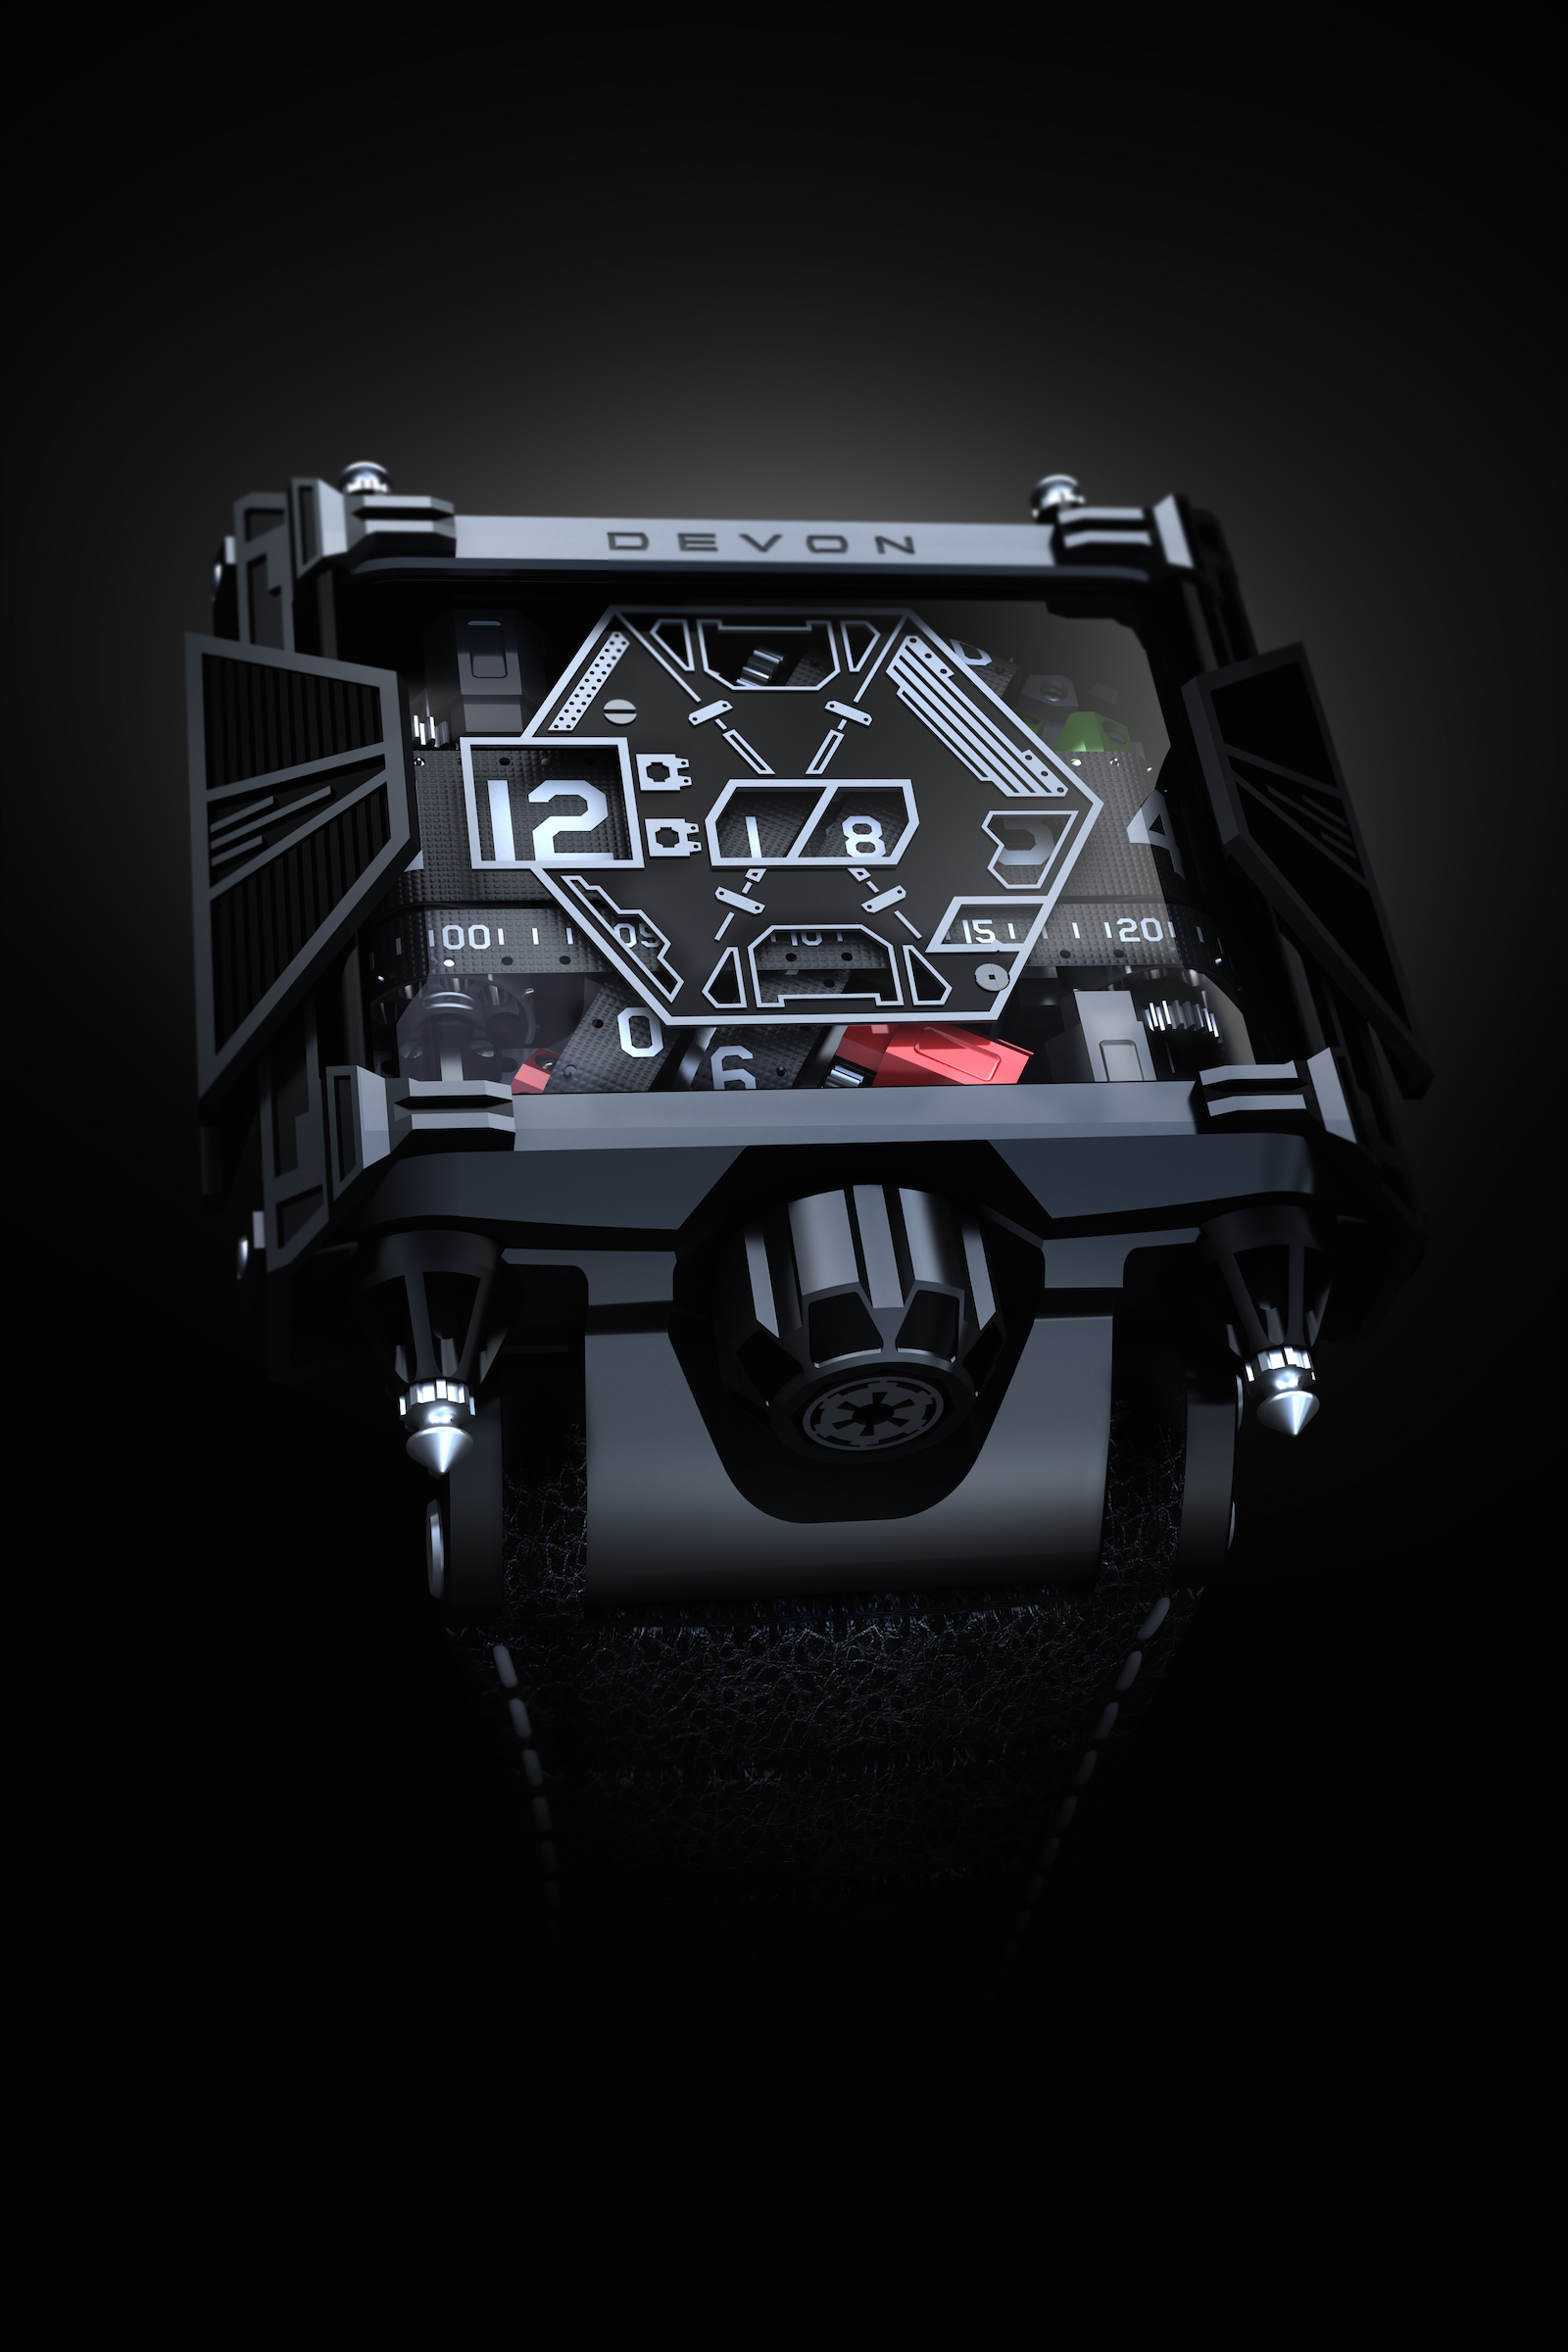 51-30 Automatic LTD Darth Vader Nixon Watch